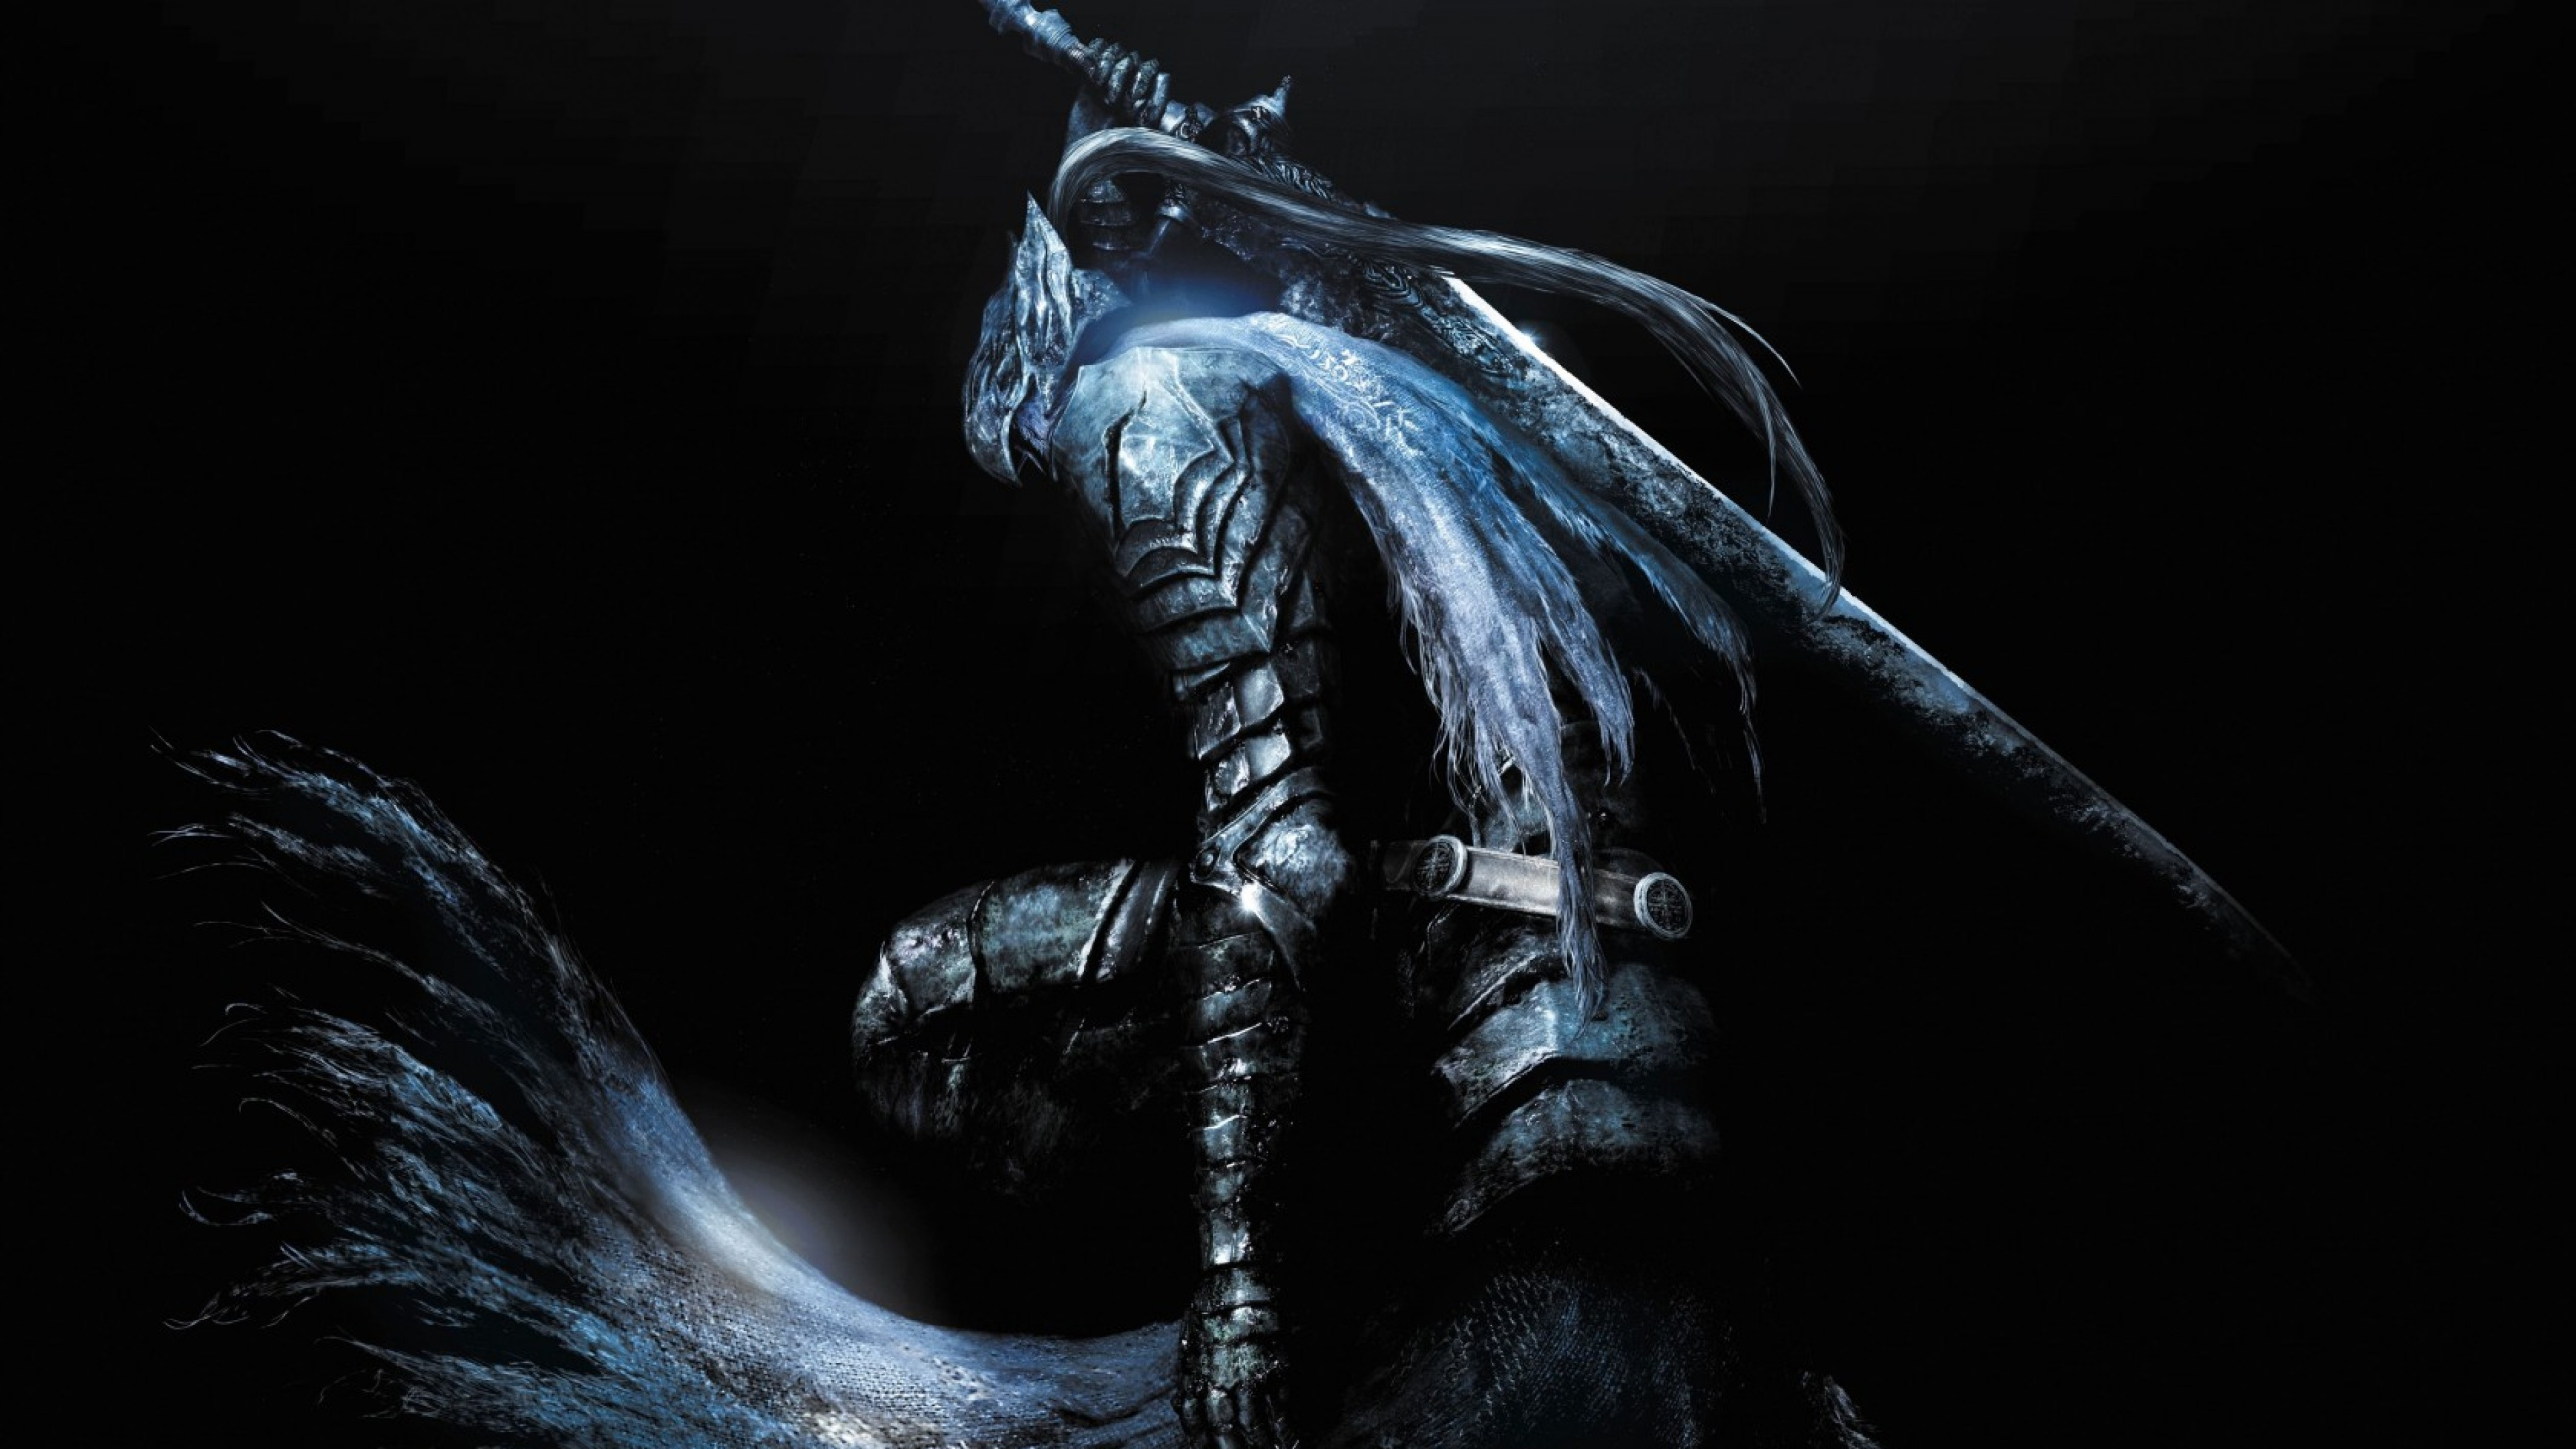 3840x2160 Preview wallpaper dark souls 3, pc game, art